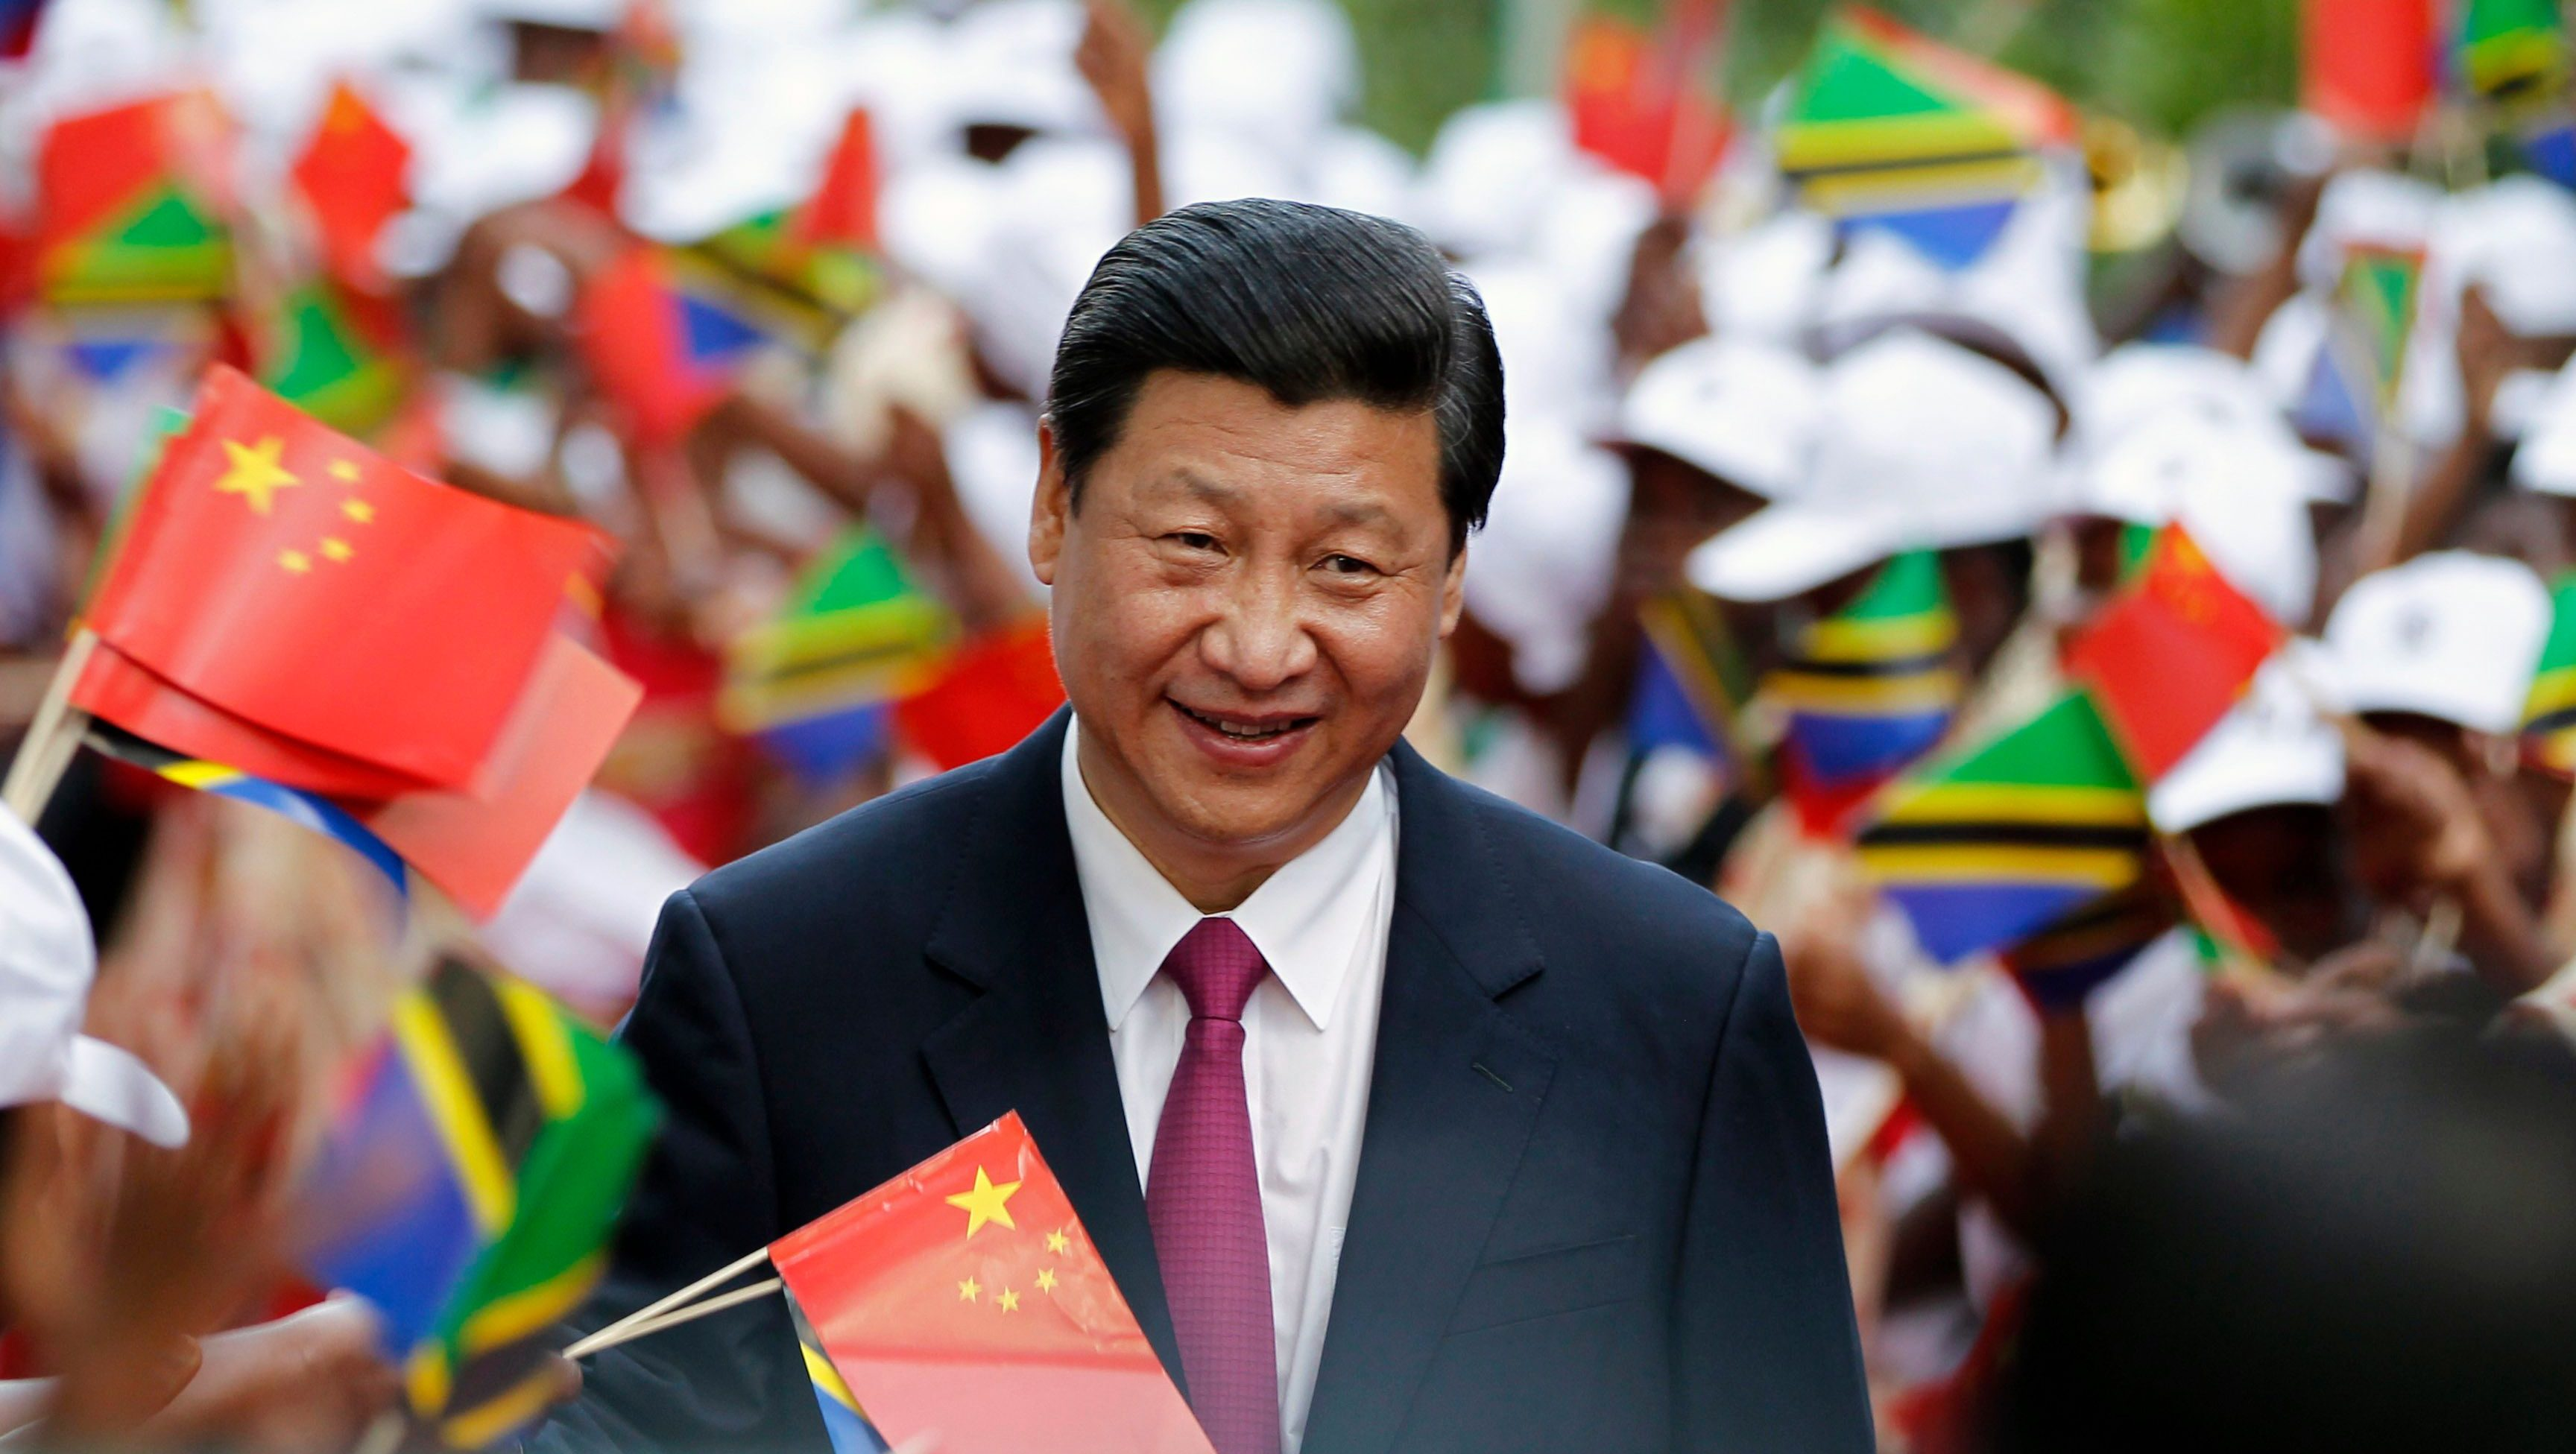 China's President Xi Jinping walks through Tanzanian women waving flags as he is welcomed at the State House in Dar es Salaam, March 24, 2013. Xi faces growing calls from policymakers and economists in Africa for a more balanced trade relationship between the continent and China as he arrives in Tanzania at the beginning of an African tour on Sunday.